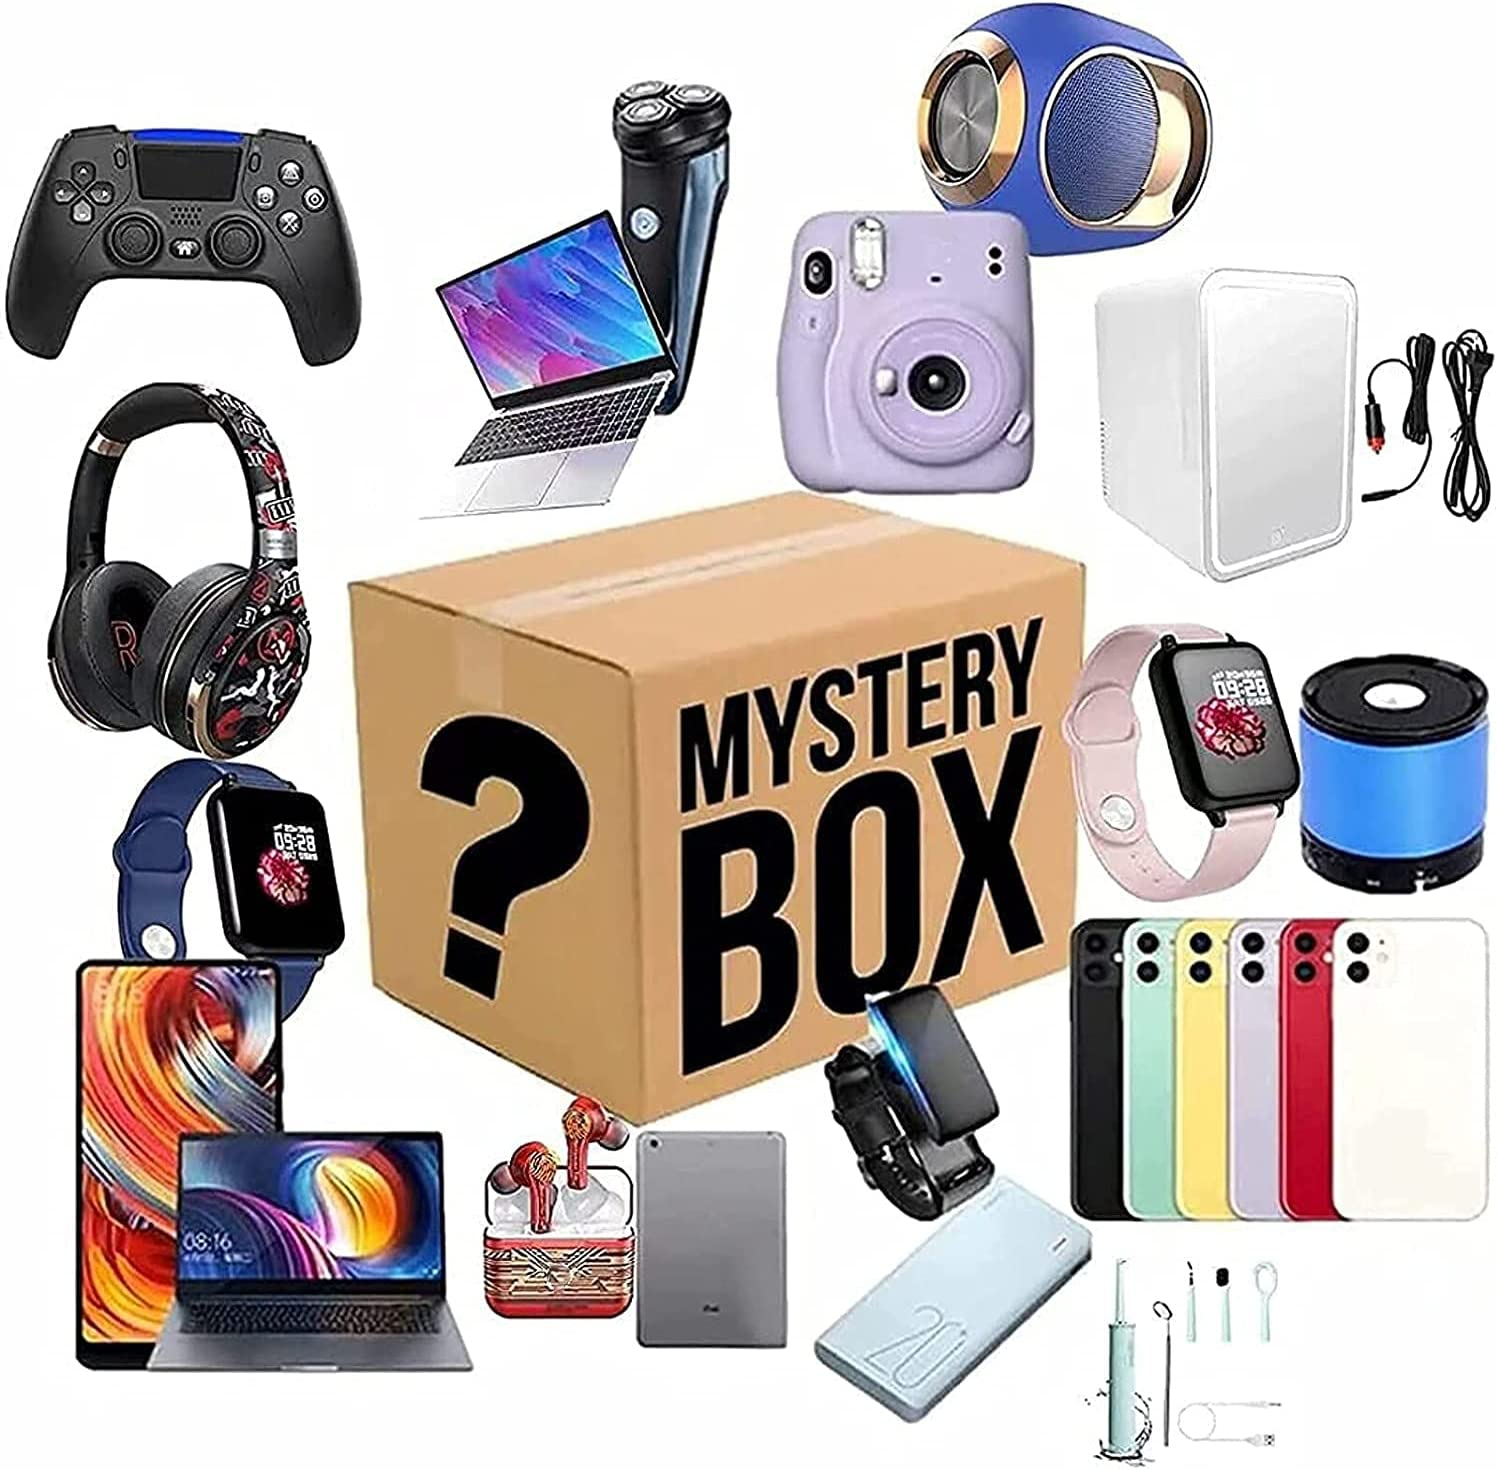 Mystery Lucky Box Mysteries Boxes Electronic is Special price for a limited time Abou Department store This a Game